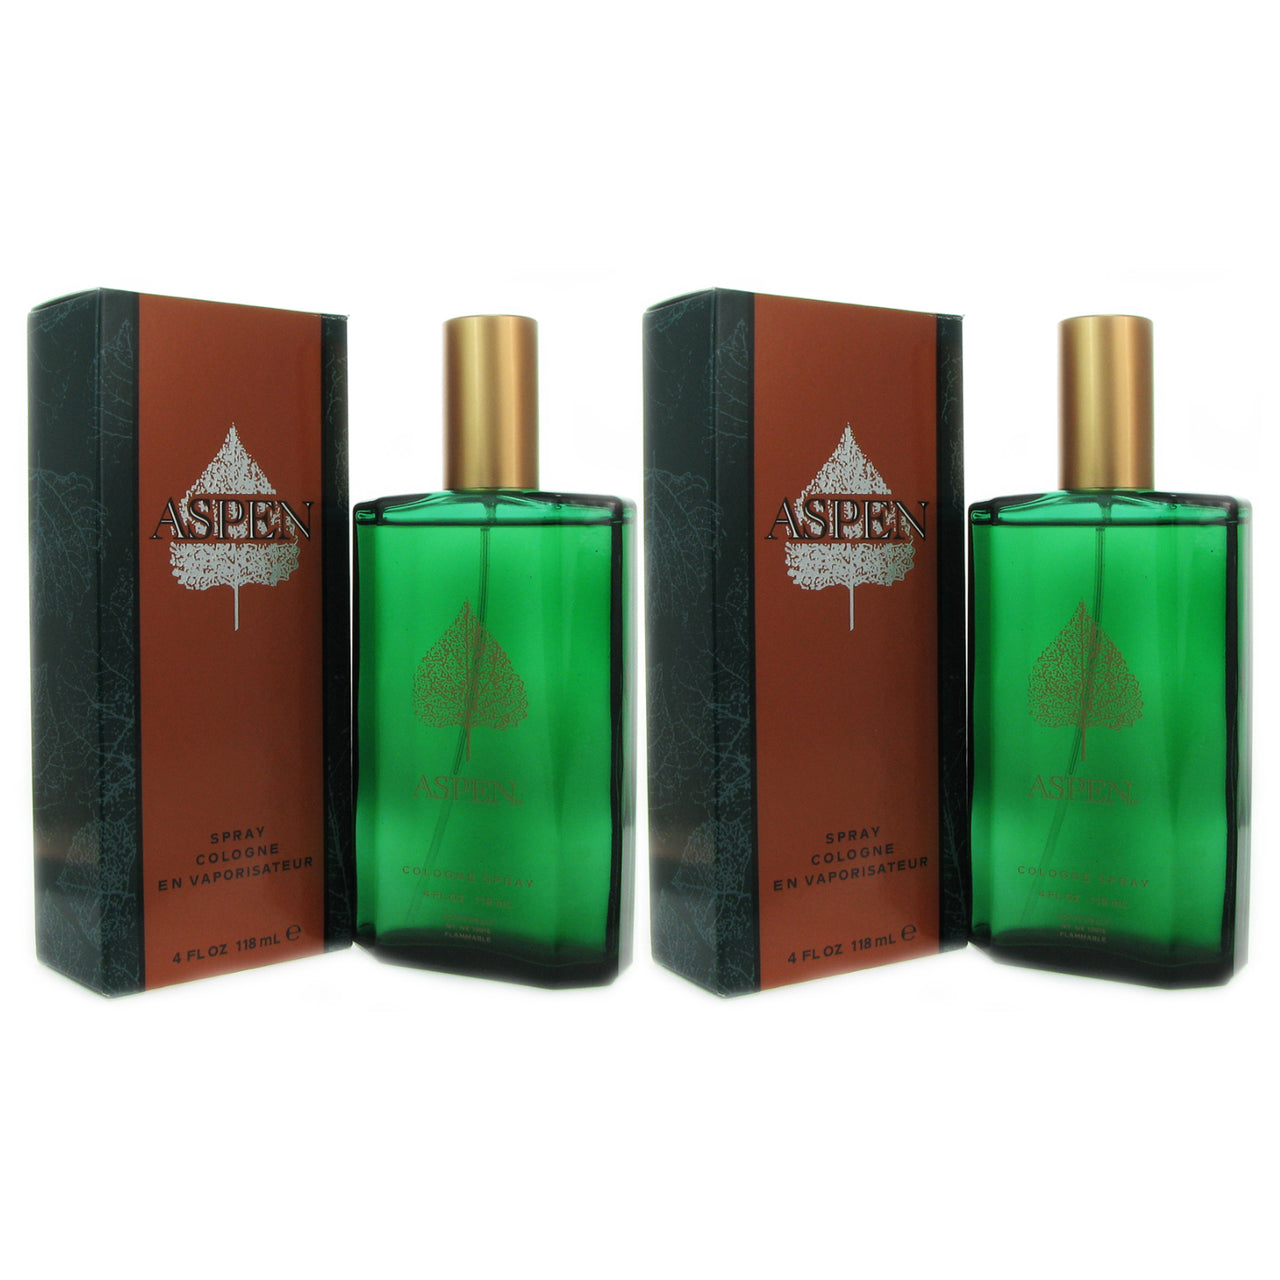 Aspen For Men By Coty 4.0 oz Eau de Cologne Spr-TWO